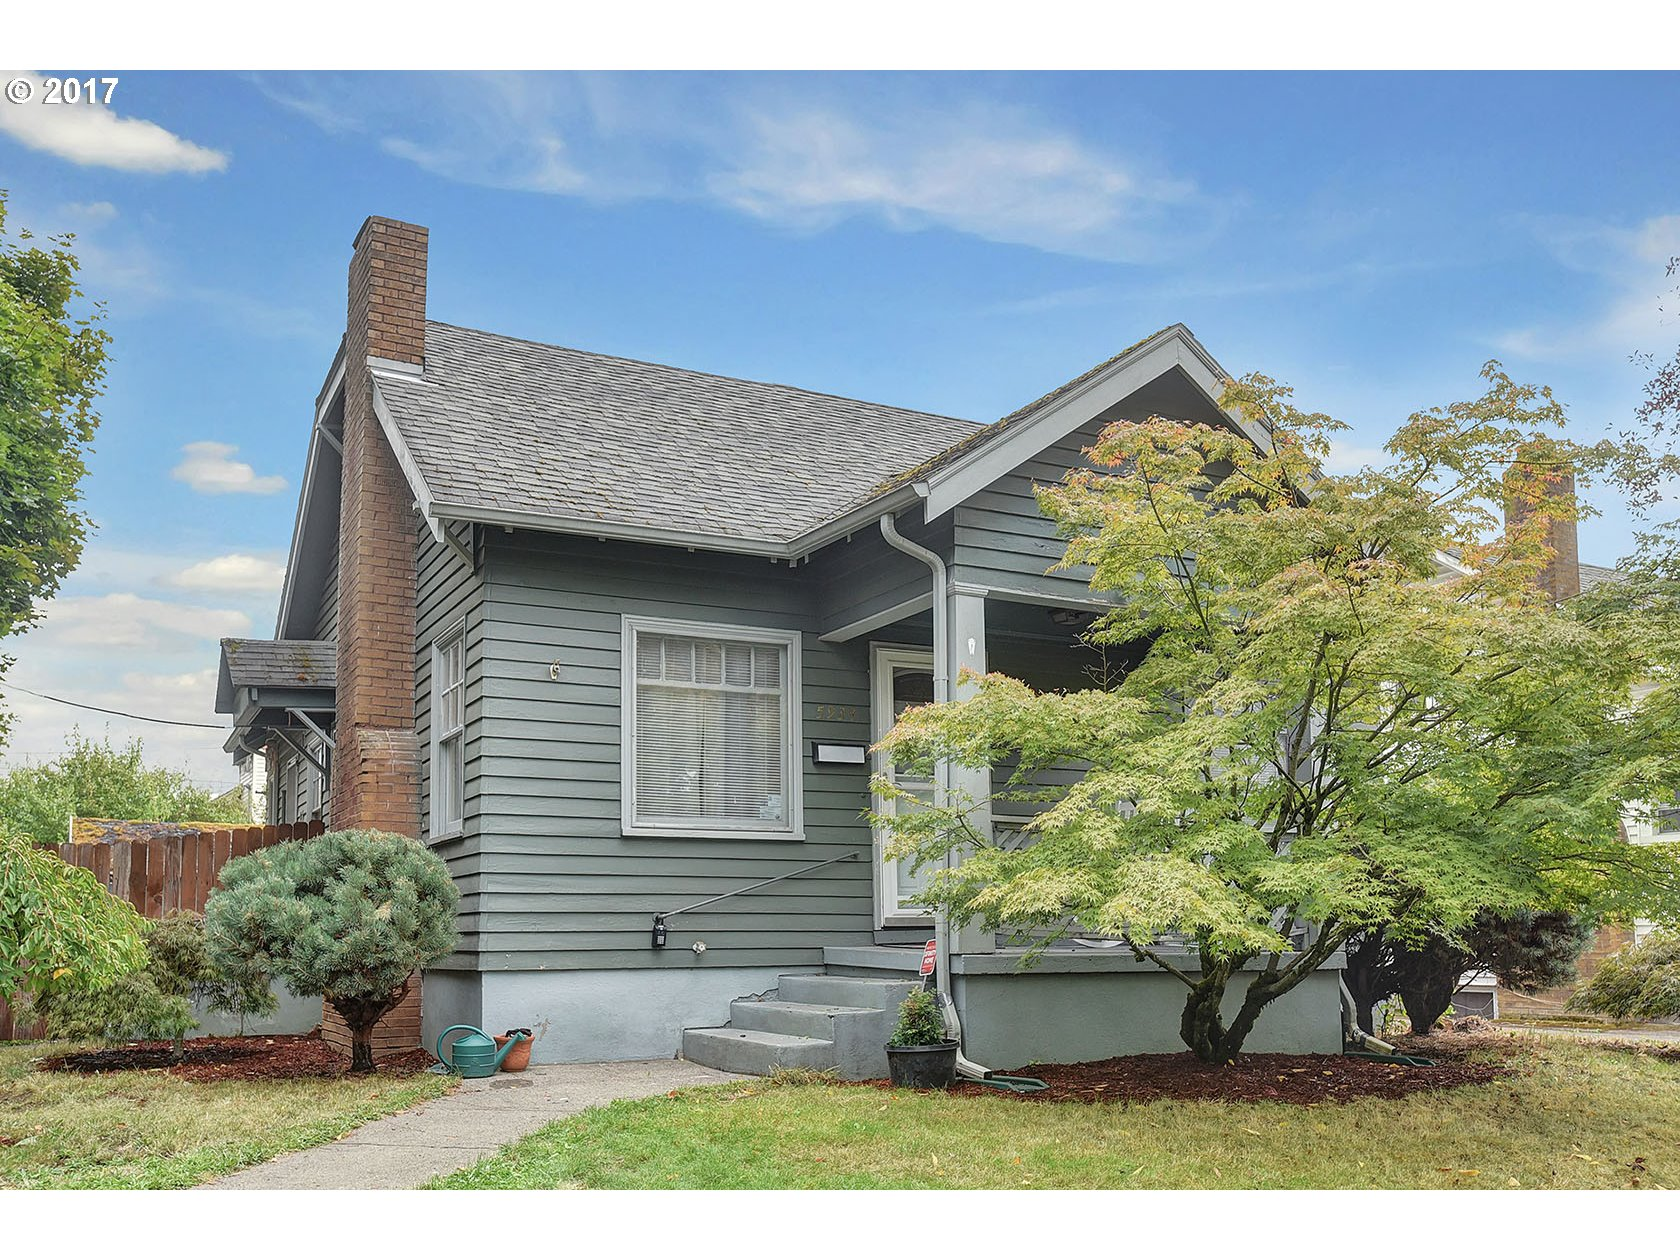 2084 sq. ft 4 bedrooms 1 bathrooms  House For Sale,Portland, OR